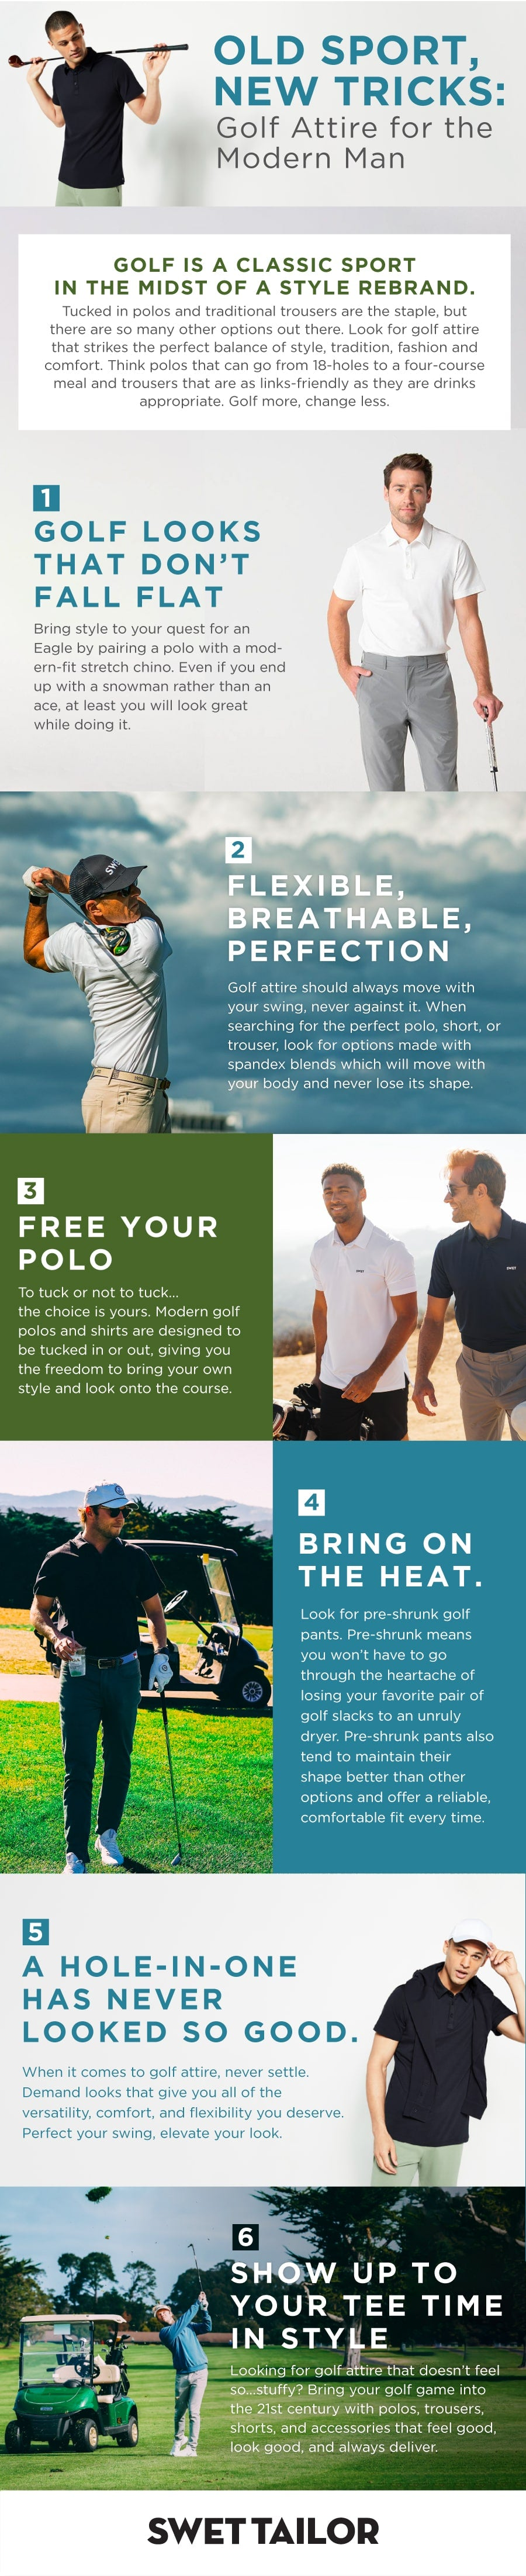 infographic about modern golf attire for men